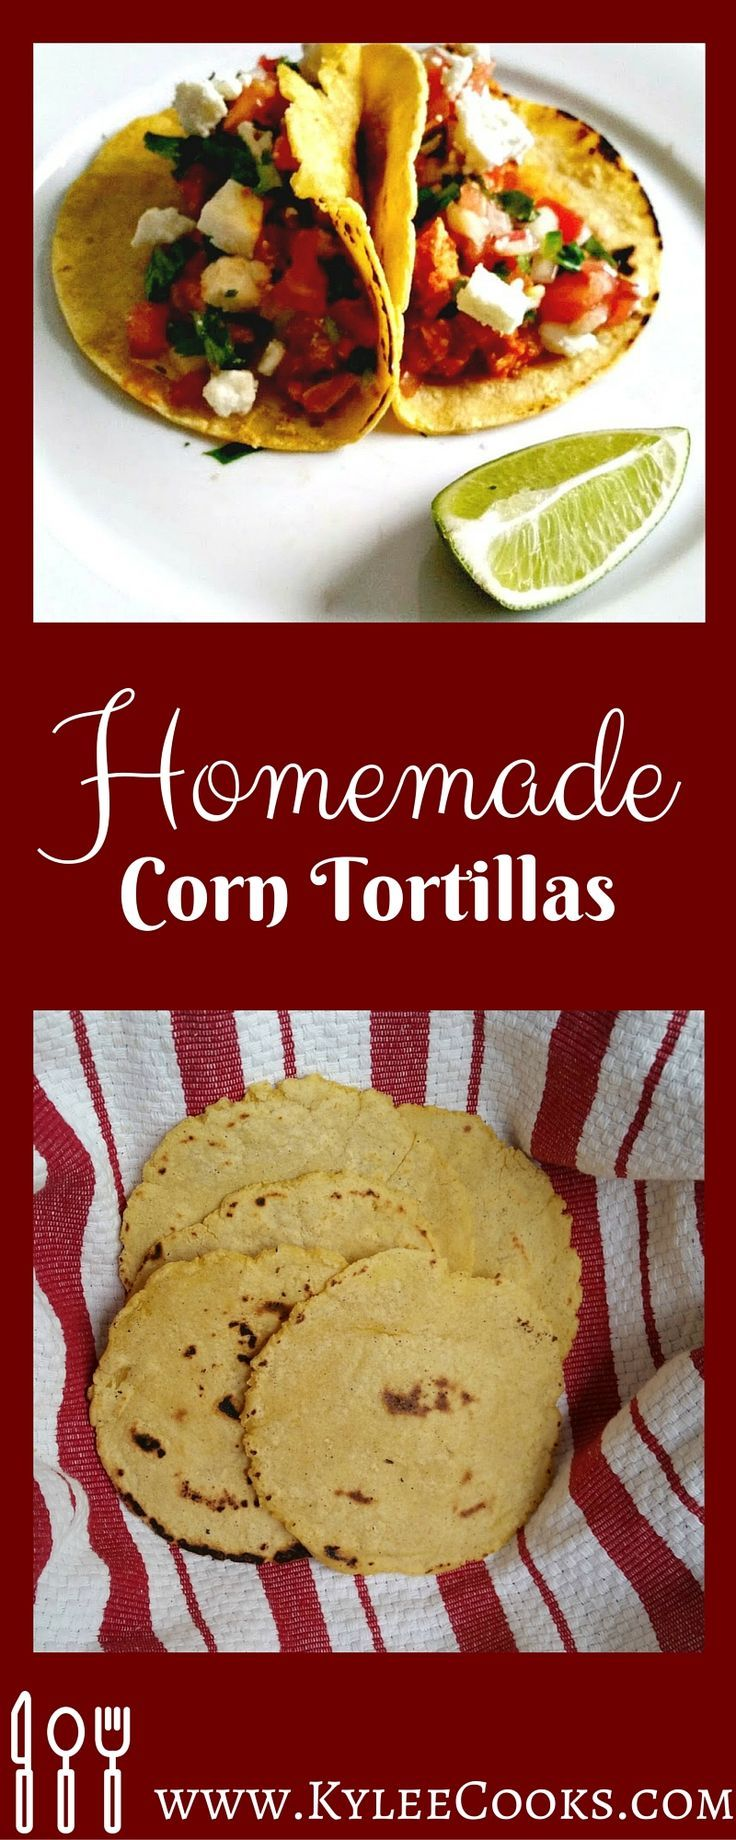 Kylee Cook: Homemade Corn Tortillas  An easy way to add more homemade deliciousness to taco night with your very own, hot-off-the-pan corn tortillas!  #breadbakers